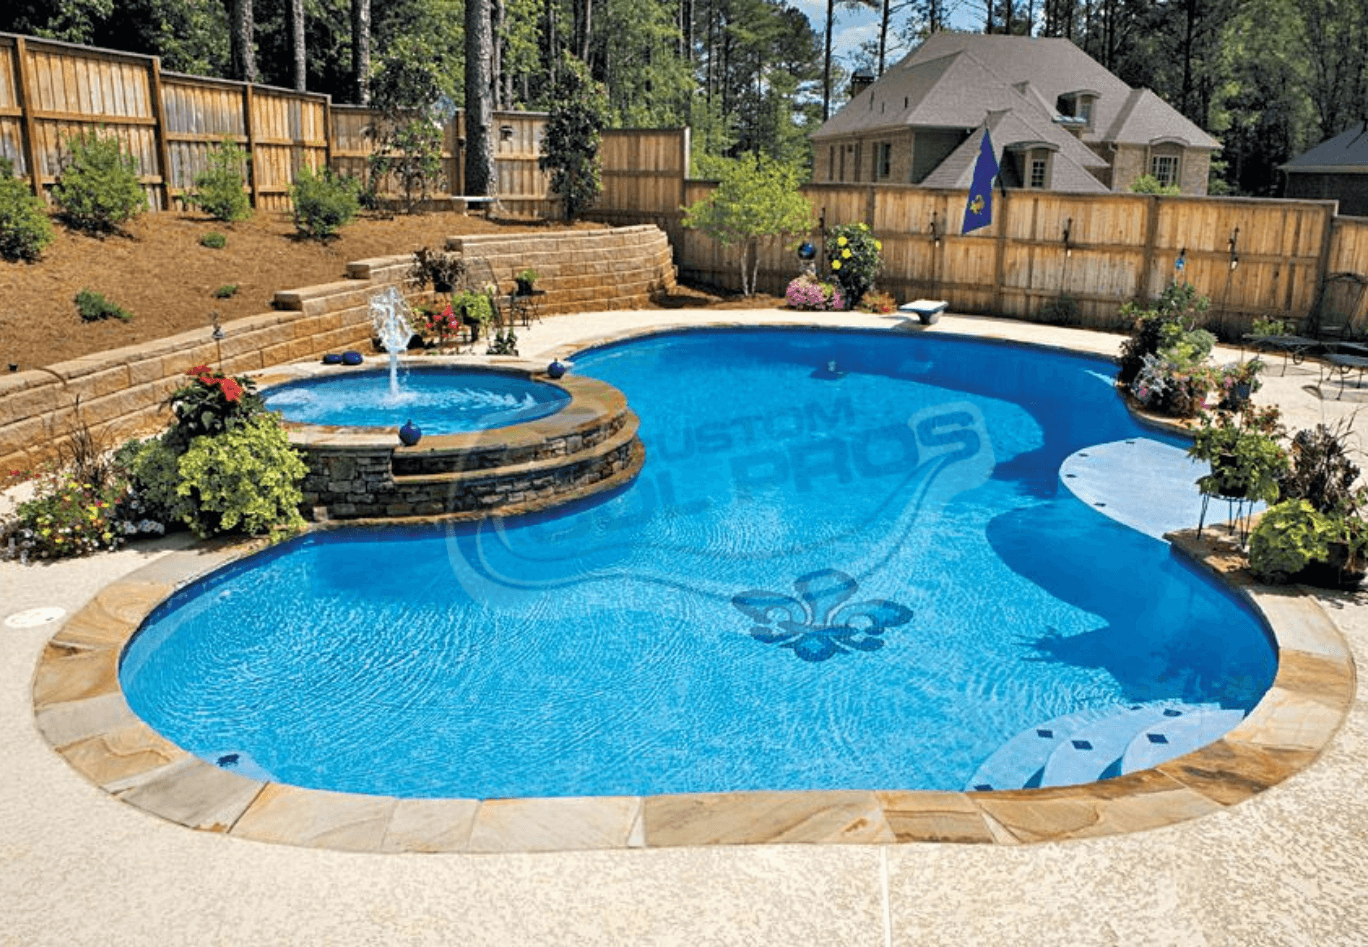 Have a Great Improvement to Your Pool Area Today